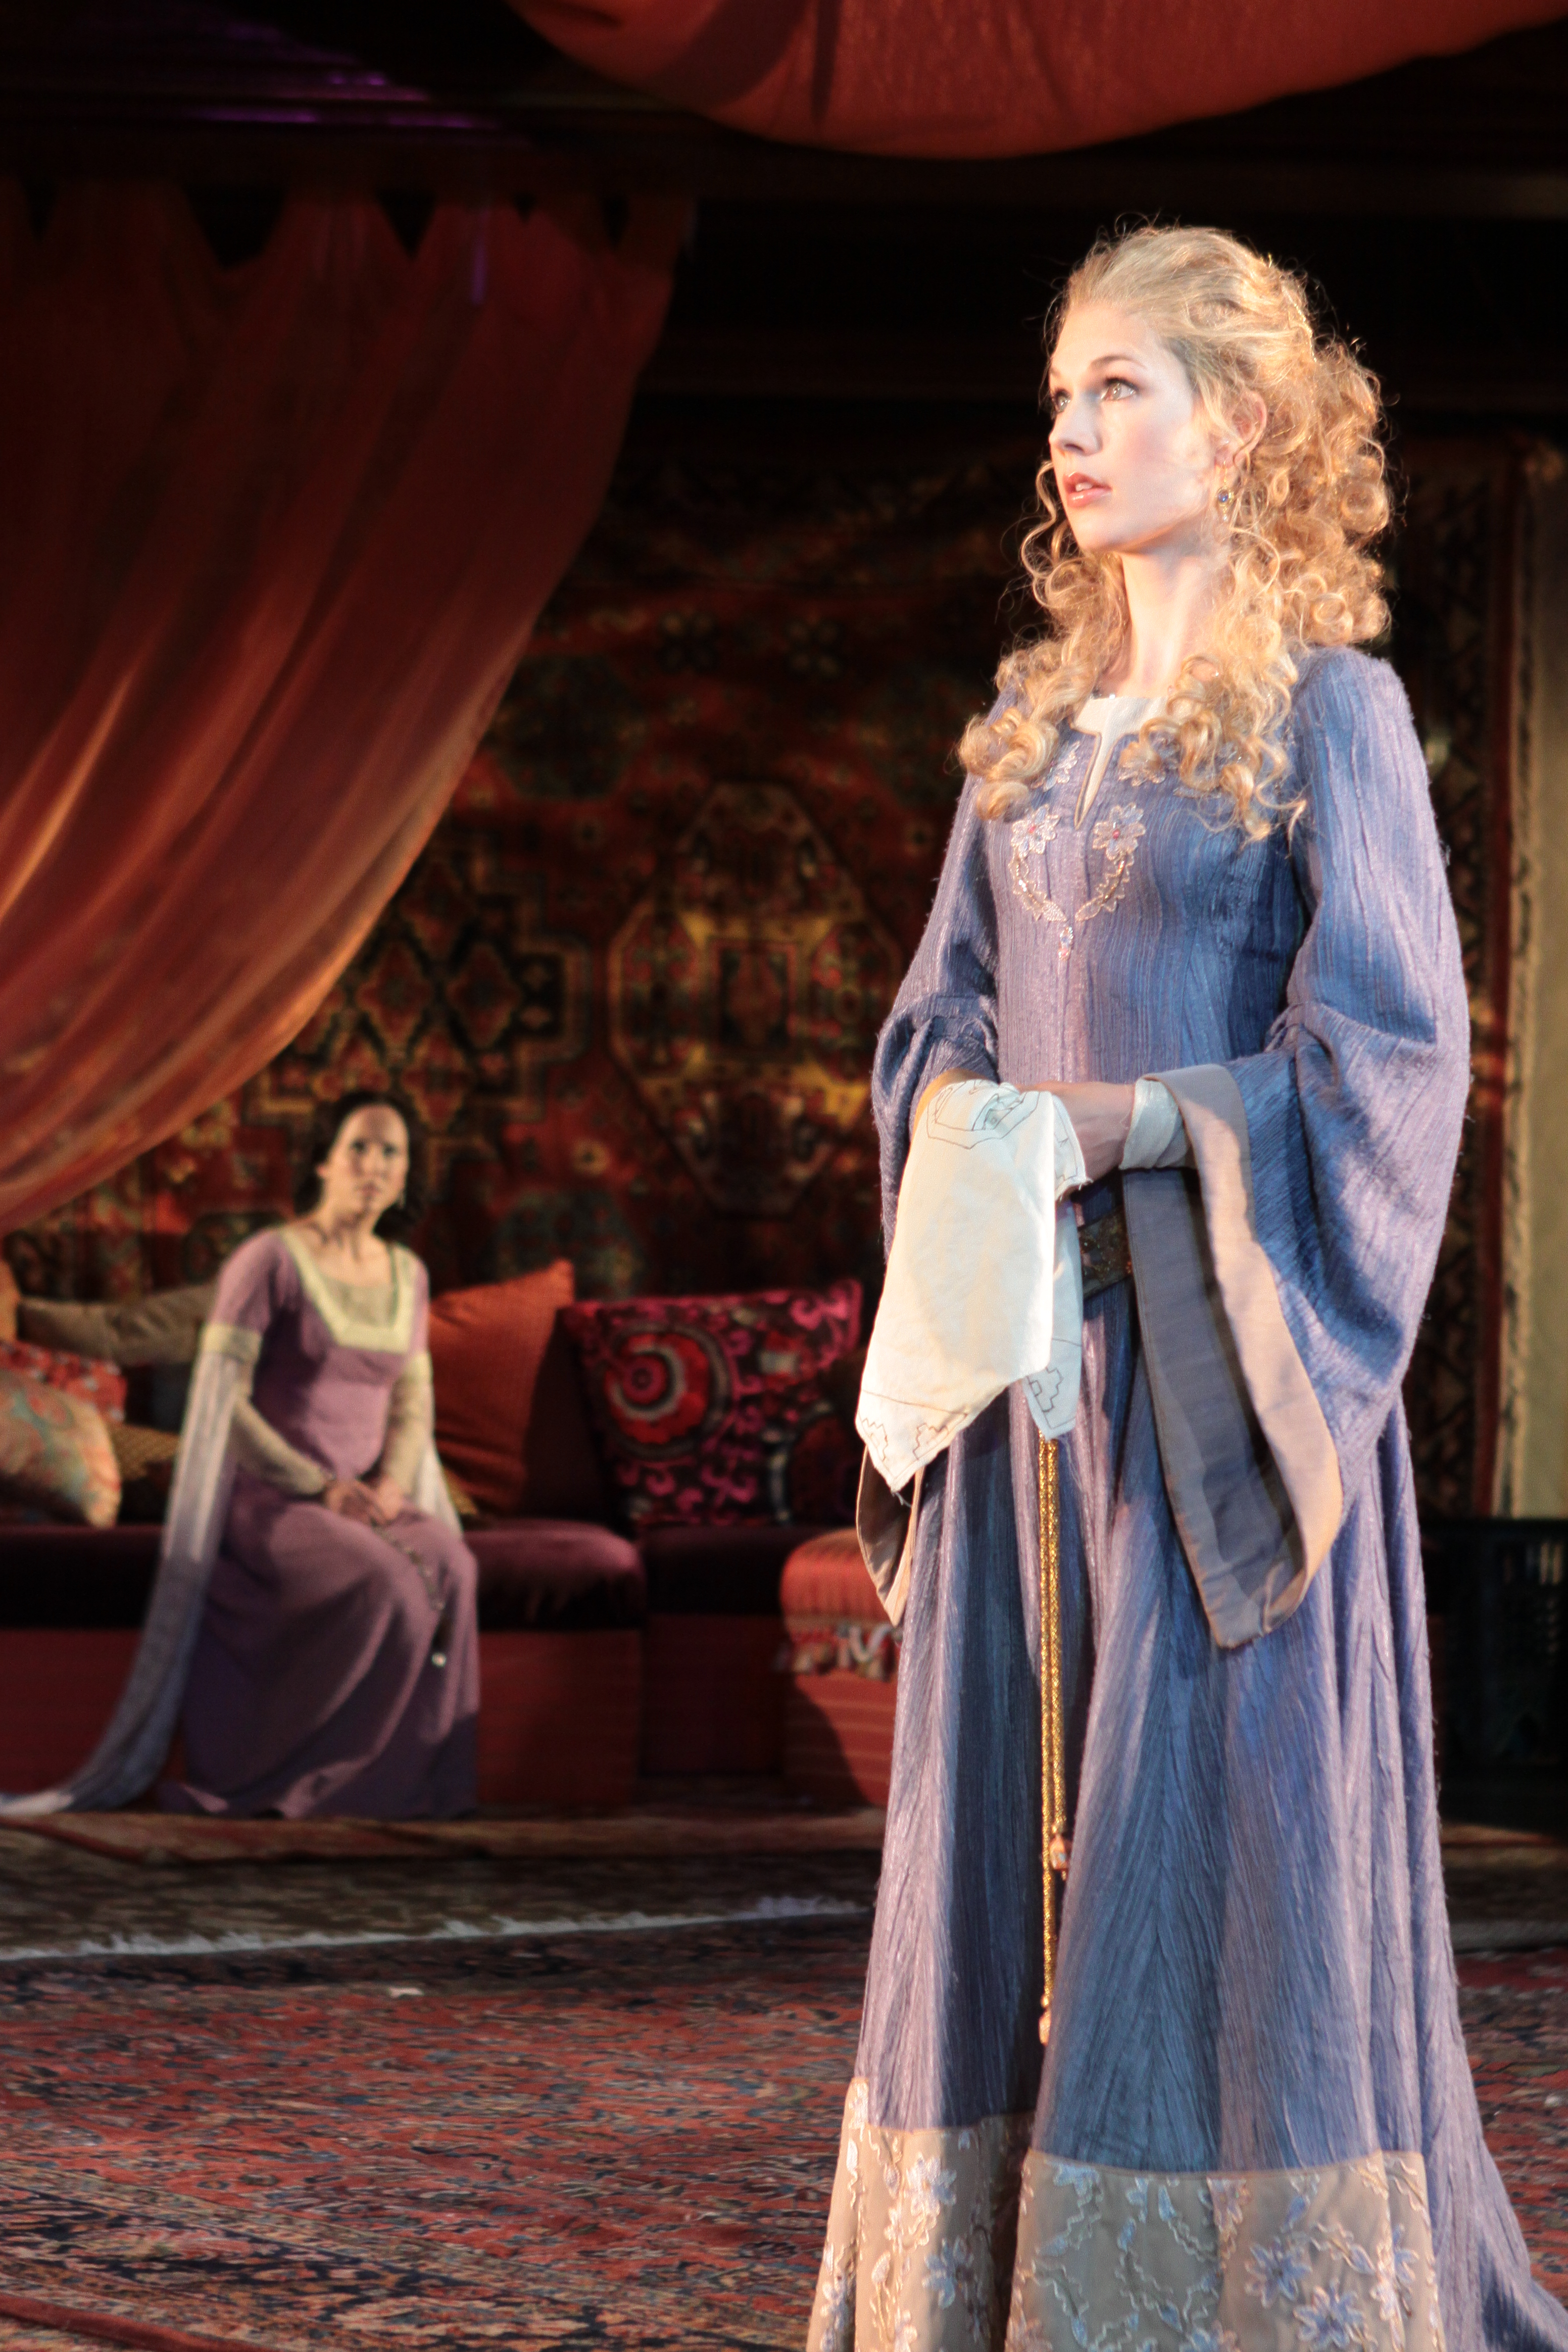 a comparison of desdemona and emilia in the play othello The role of the female characters in shakespeare's othello essay - in shakespeare's othello, we the audience are introduced to several characters throughout the course of the play, three of which are female these characters are desdemona, wife to othello, emilia, wife to iago and bianca, casio's lover.